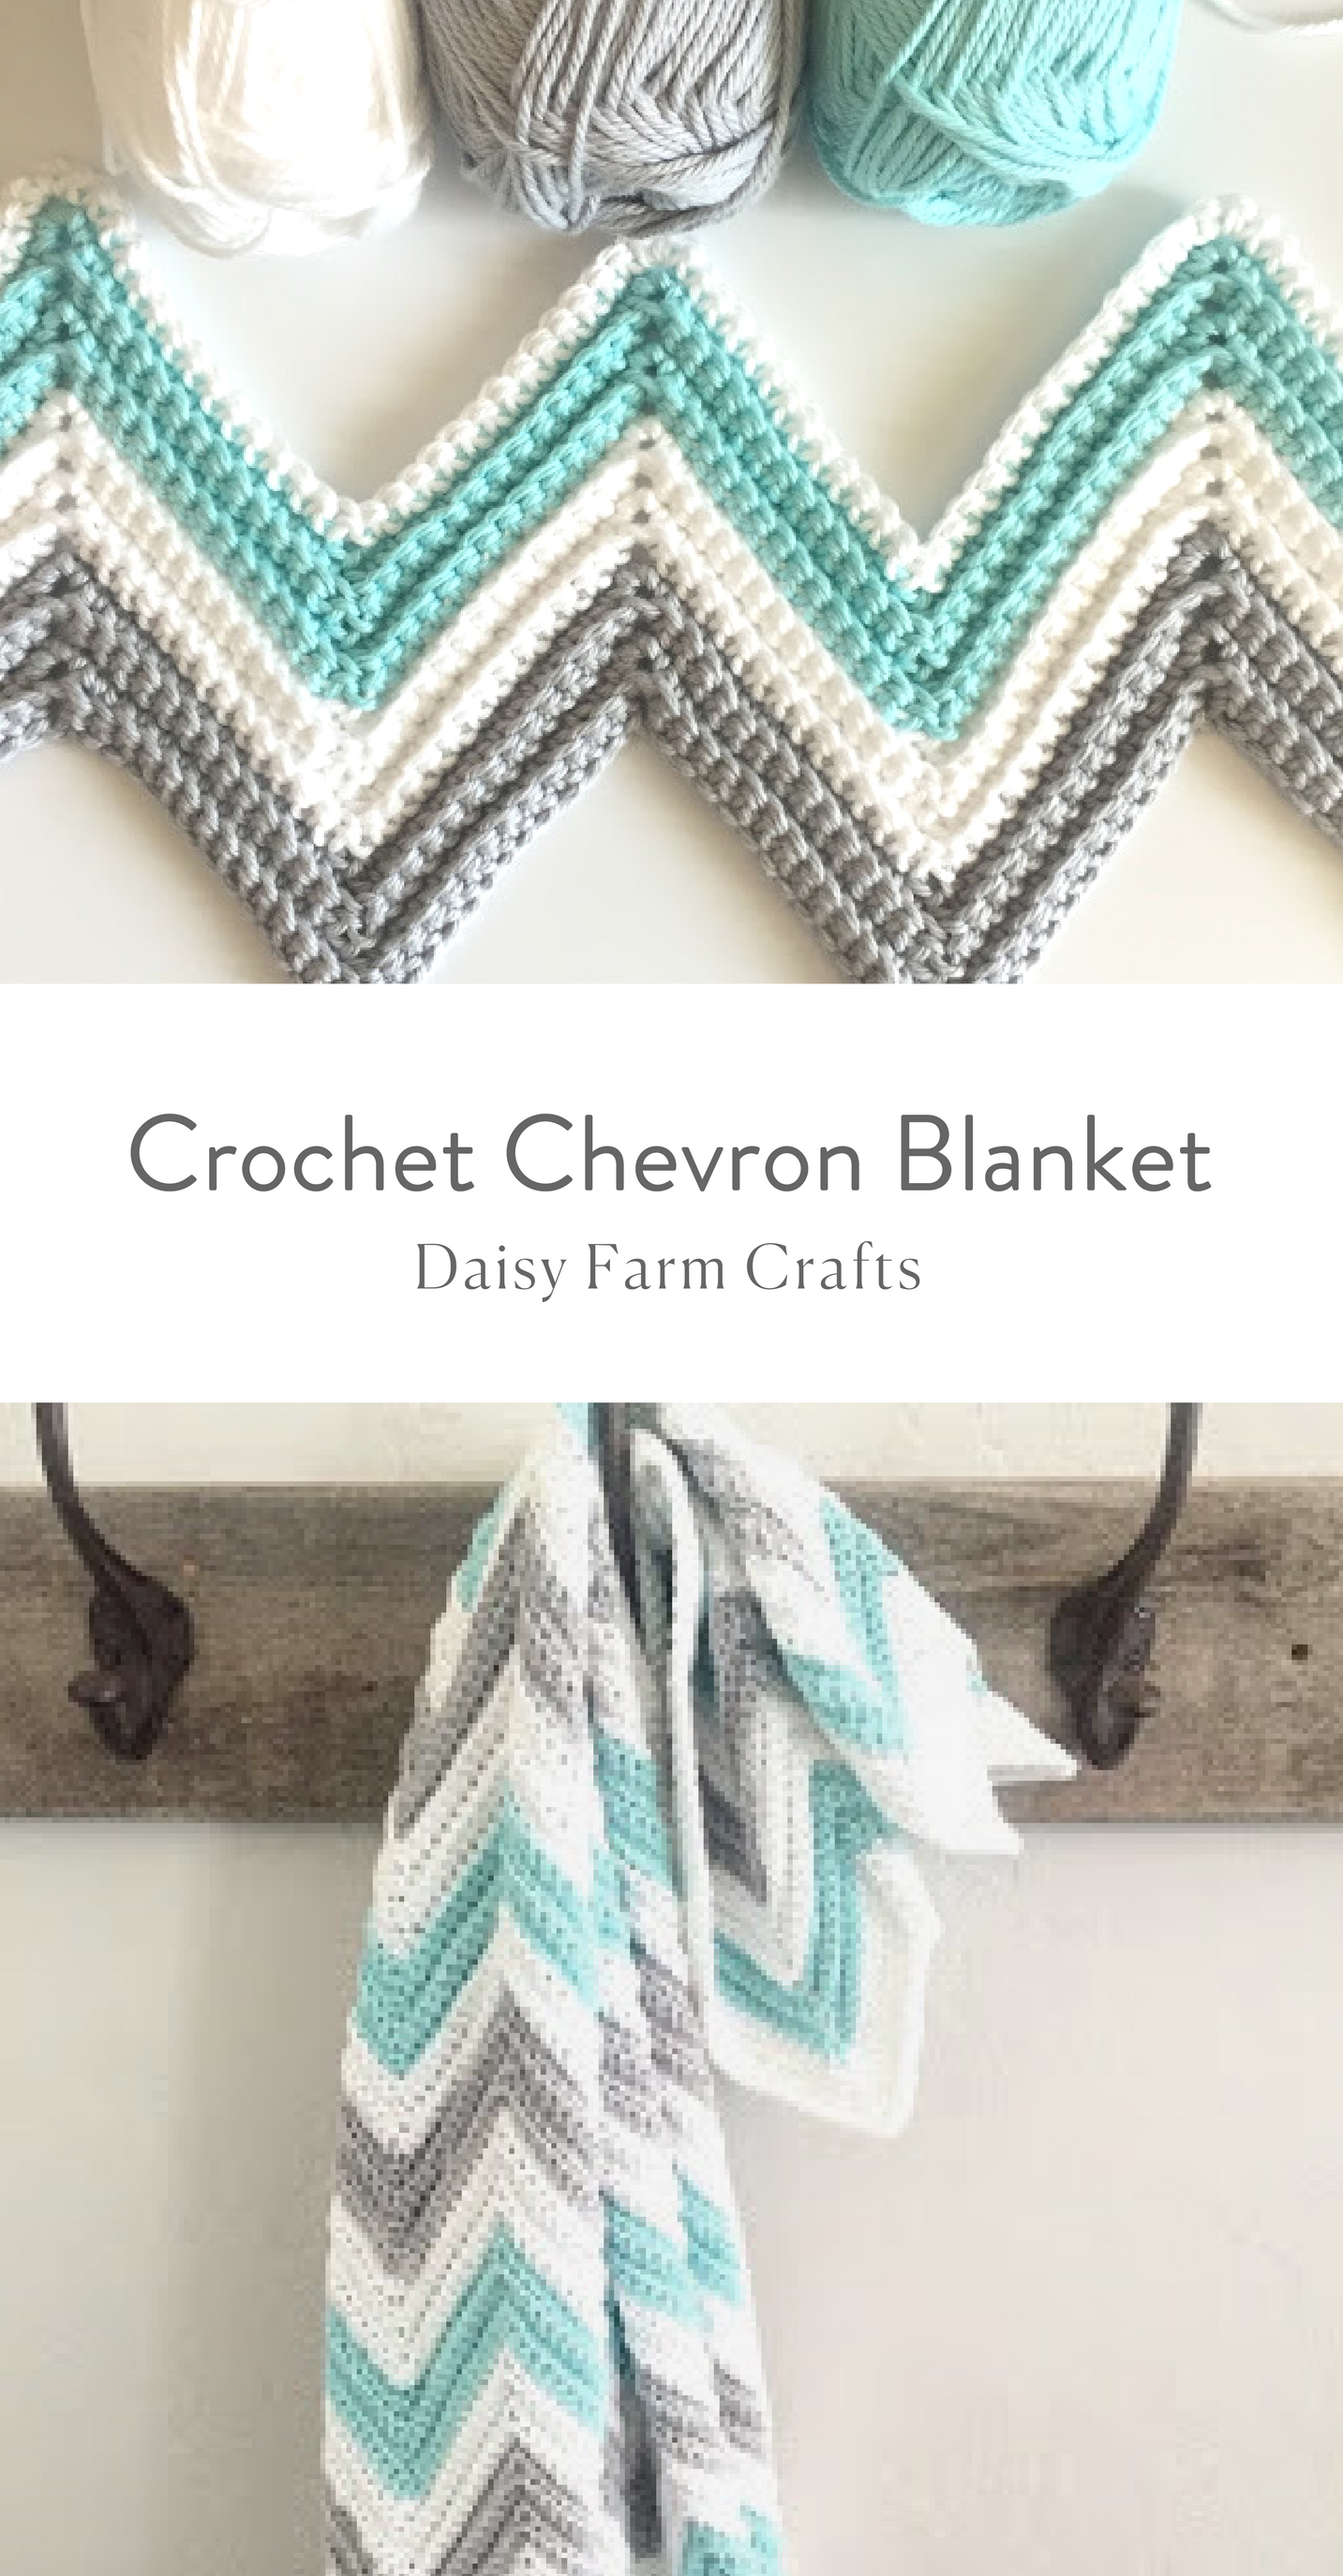 Free Pattern - Crochet Chevron Blanket | Knitting | Pinterest ...